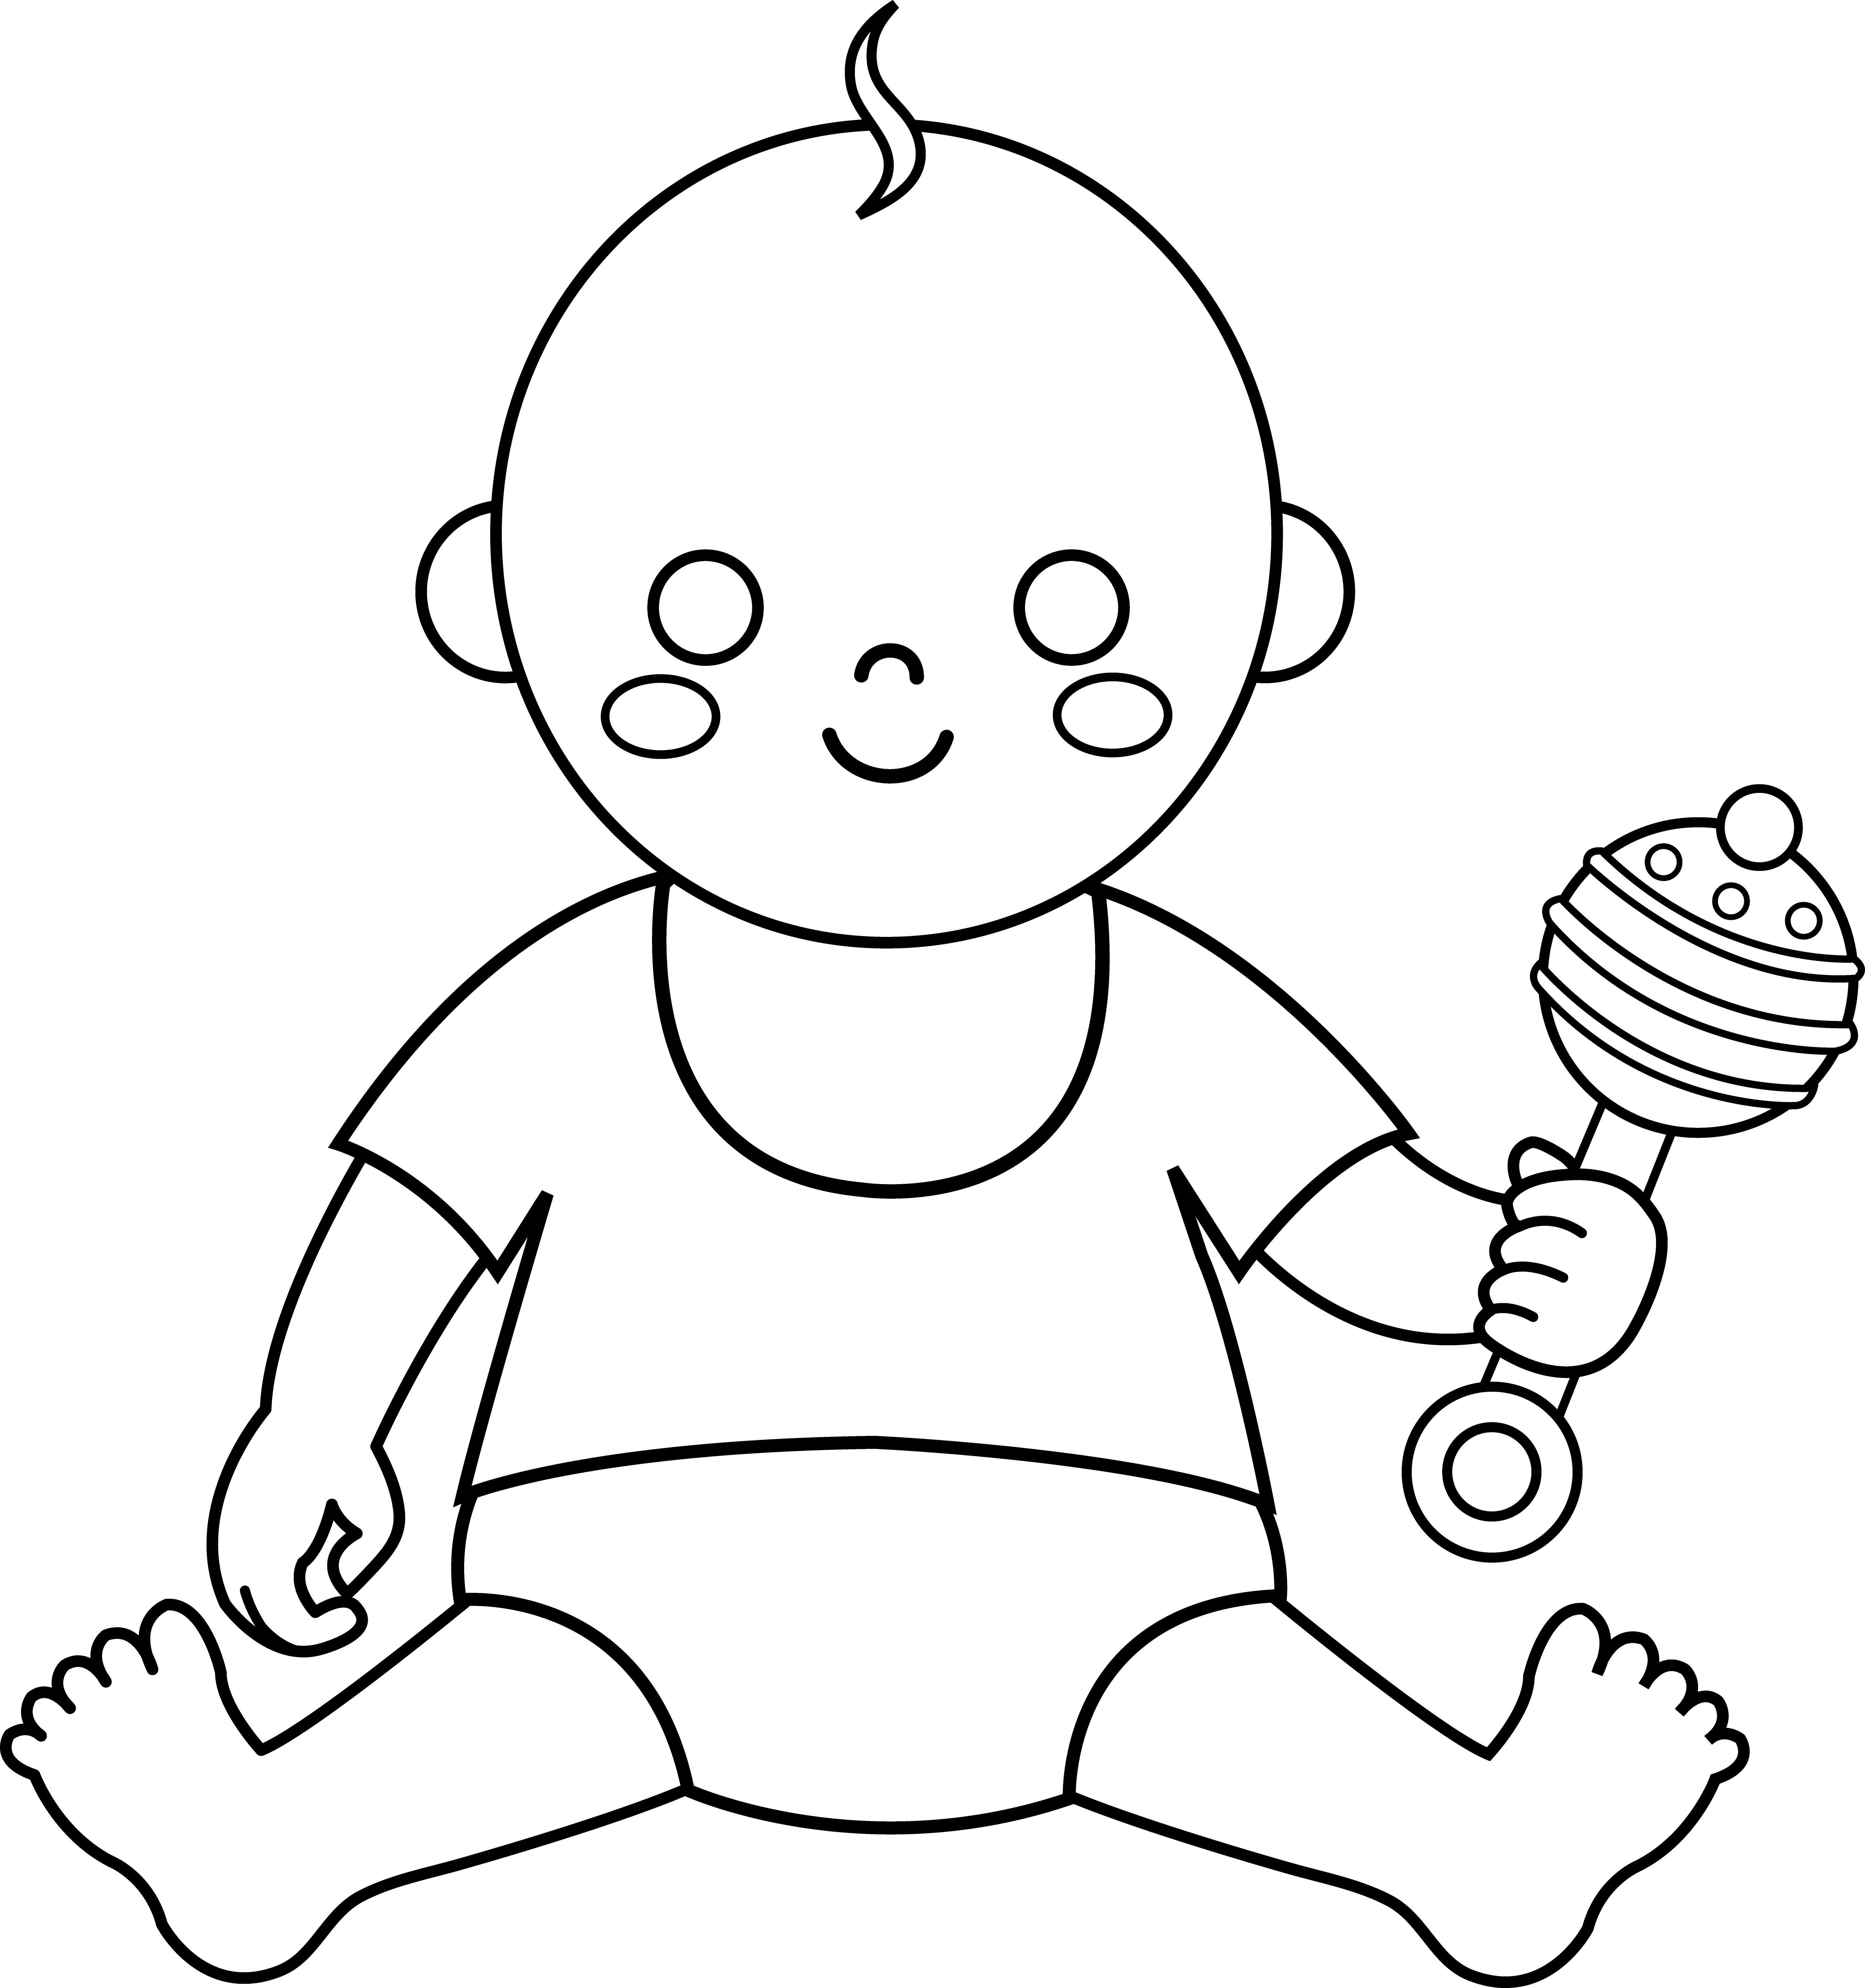 Free Infant Clipart Download Free Clip Art Free Clip Art On Clipart Library